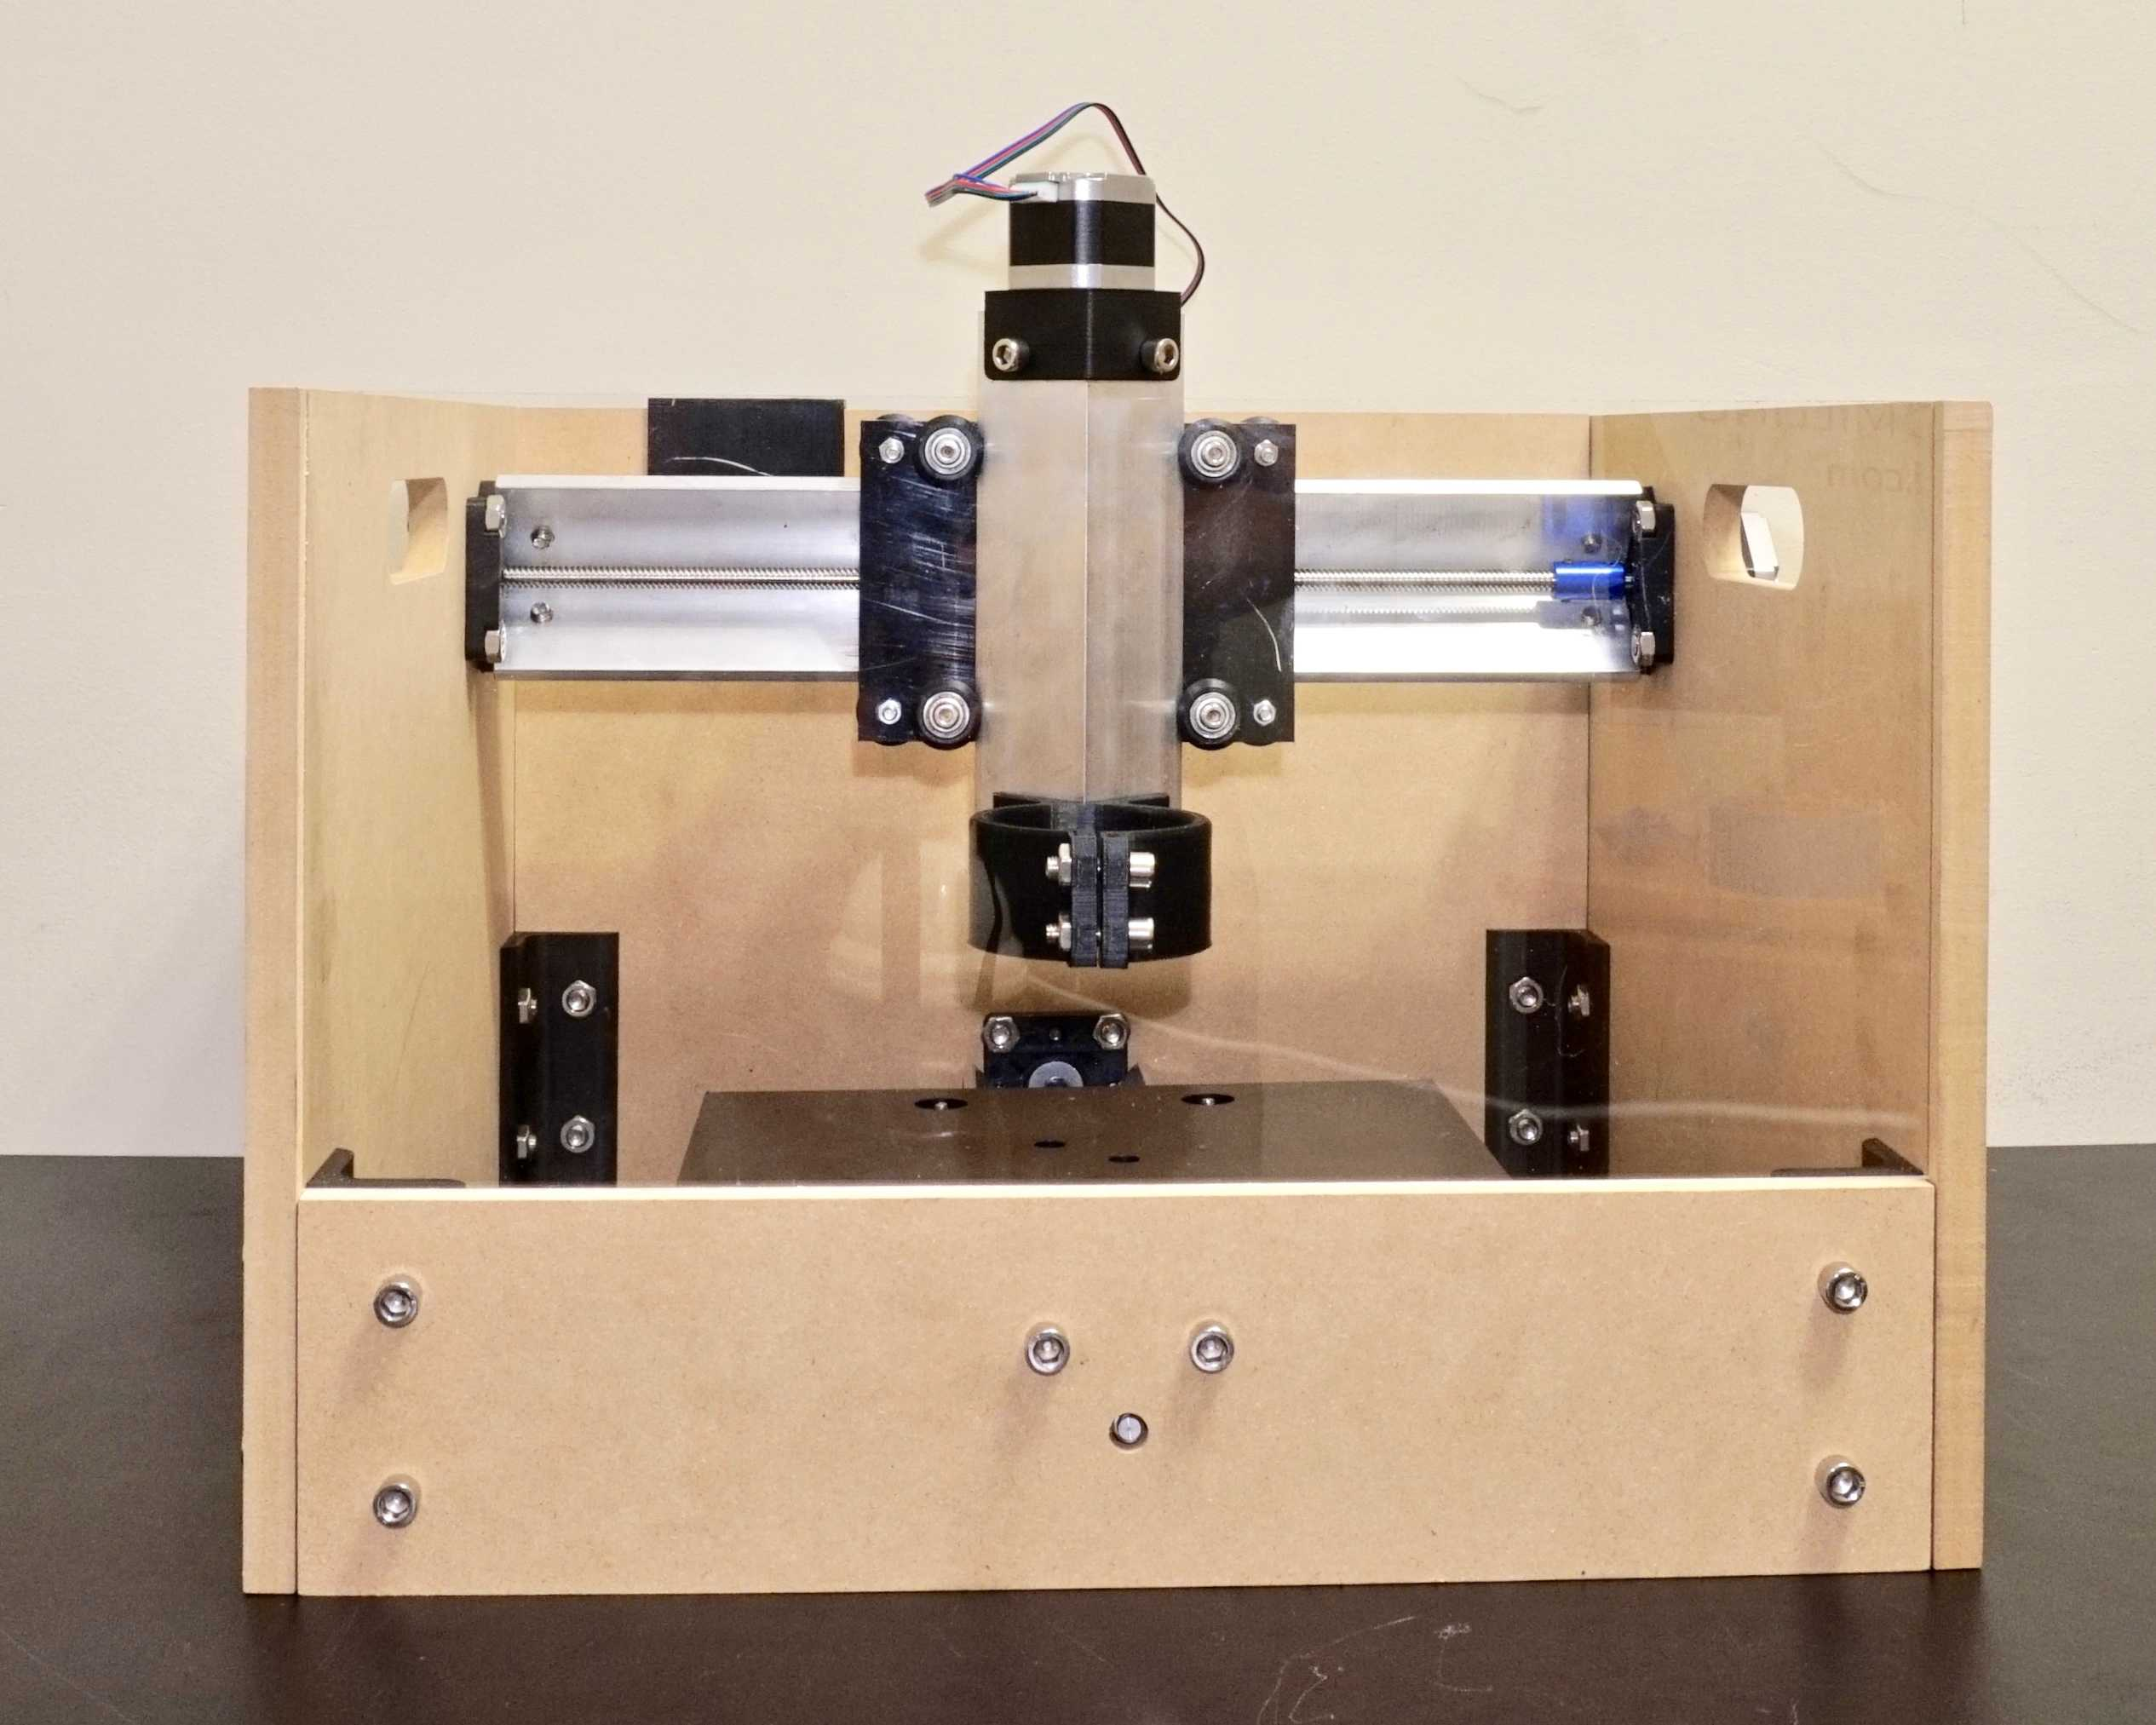 Sienci Mill One - Desktop CNC